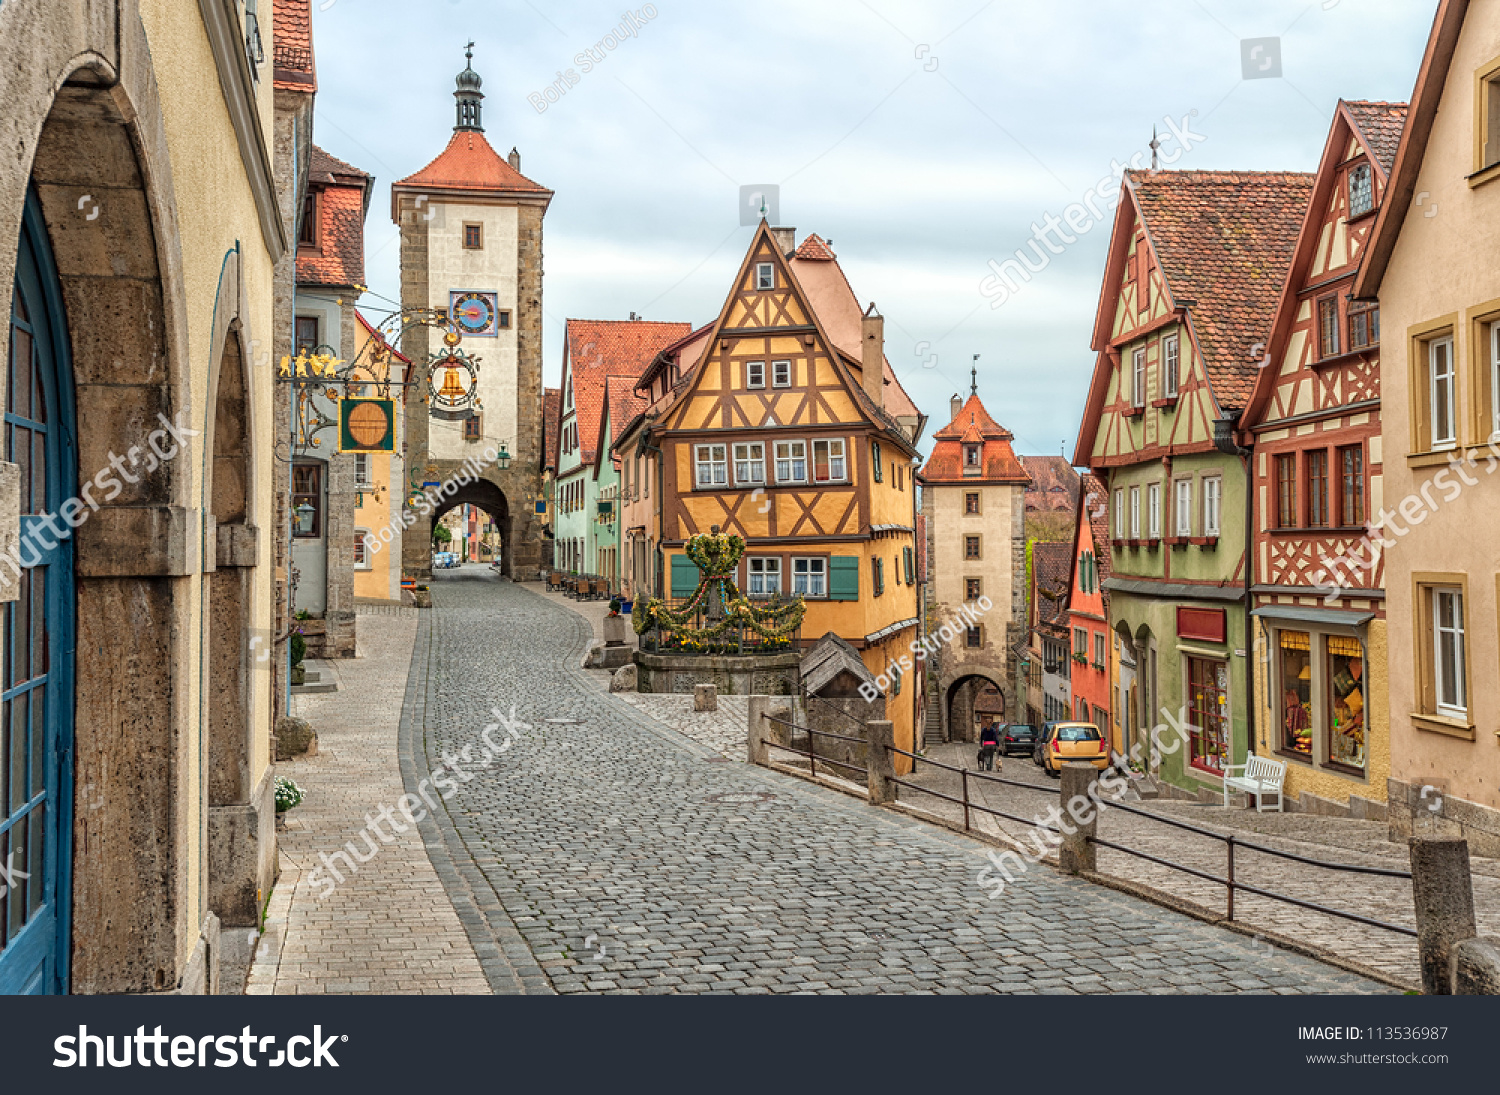 rothenburg ob der tauber famous historical の写真素材 今すぐ編集